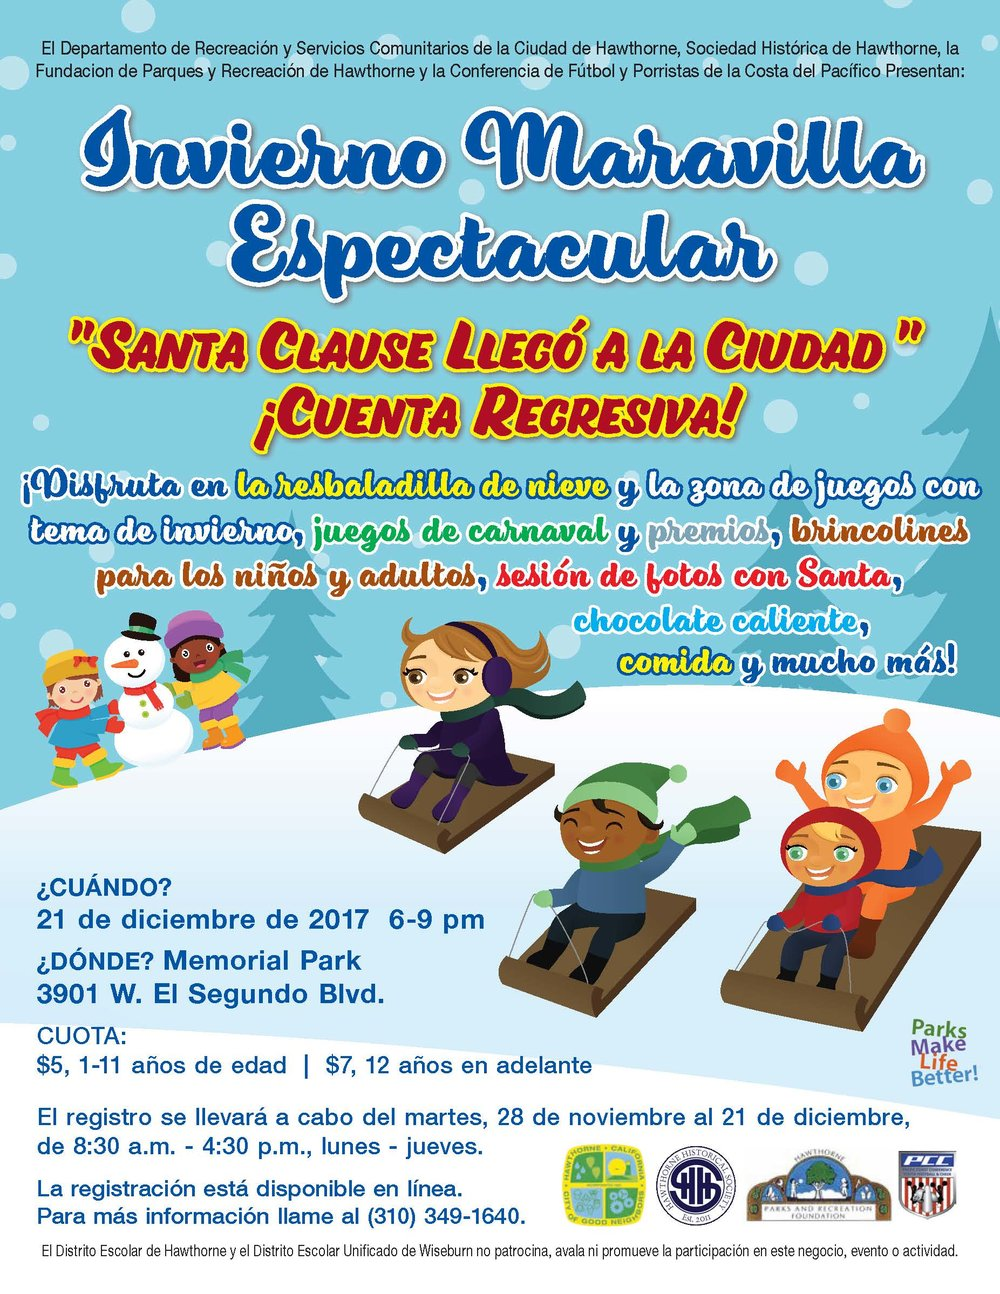 Winter Wonderland Spectacular - Spanish